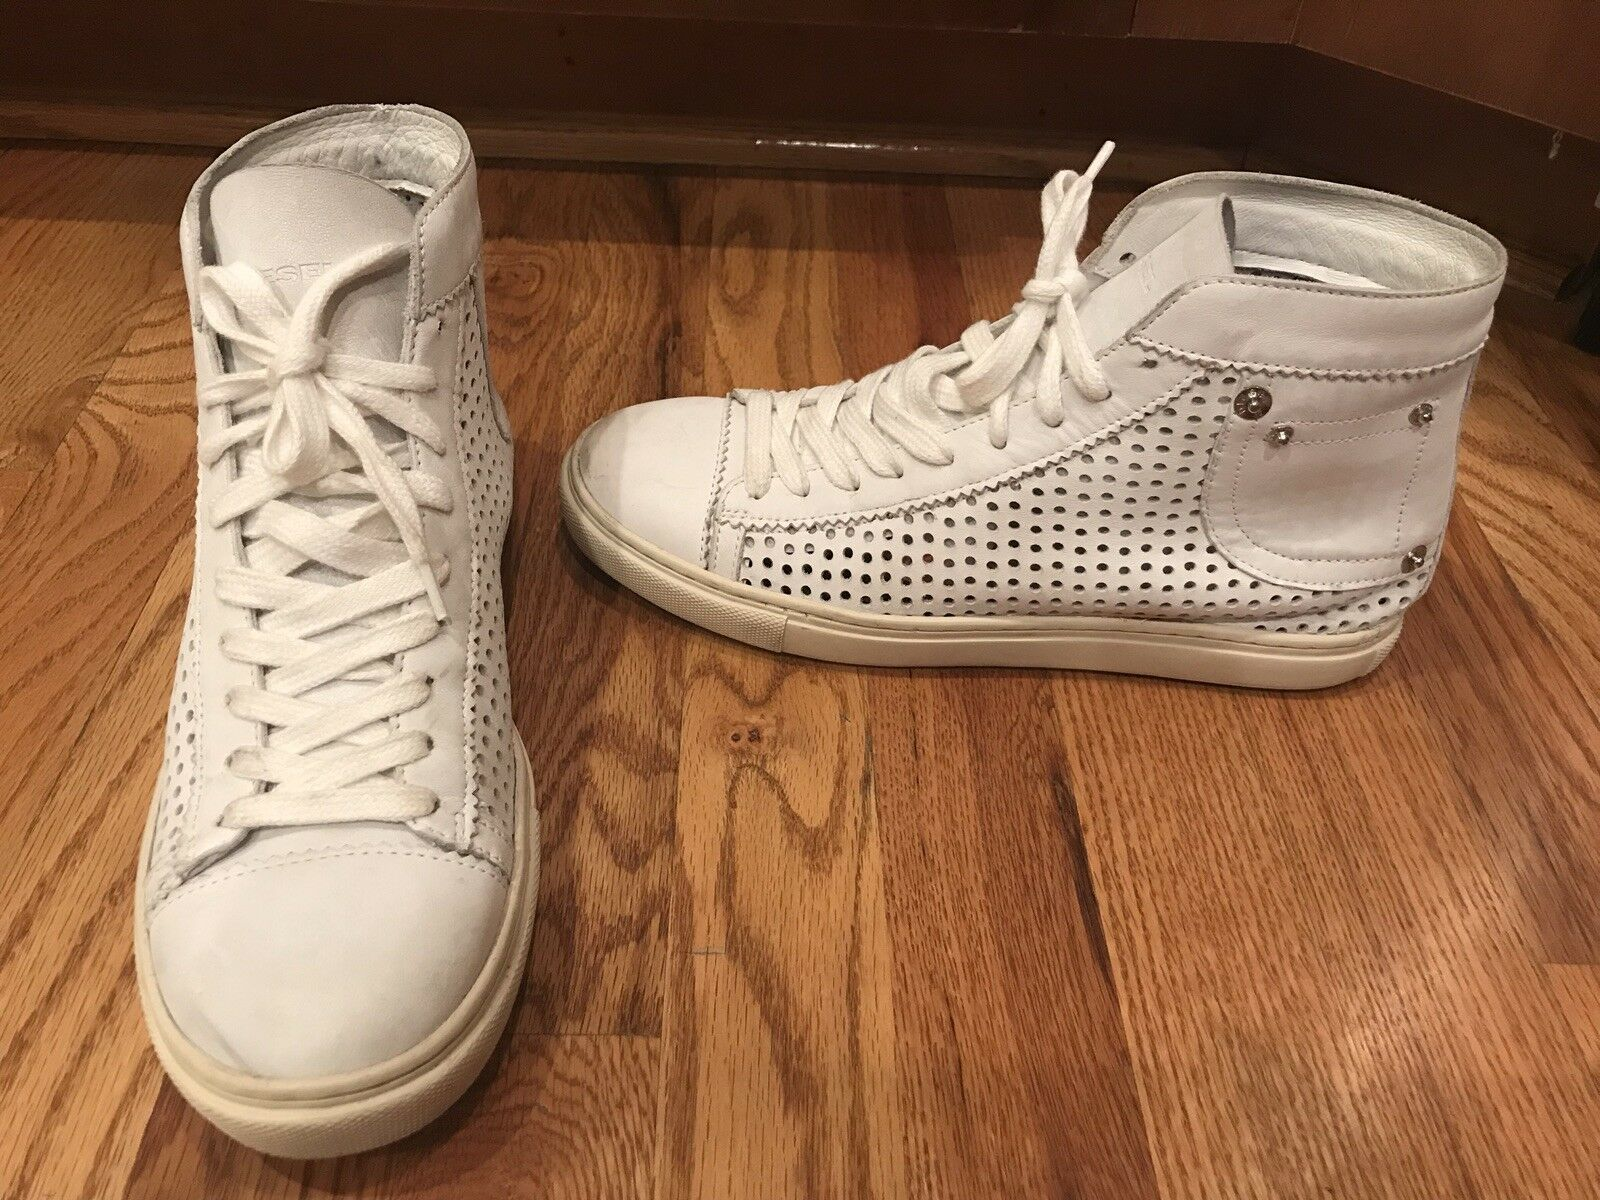 DIESEL PERFORATED LEATHER HIGH TOP SNEAKERS SHOES 40/9-5 M